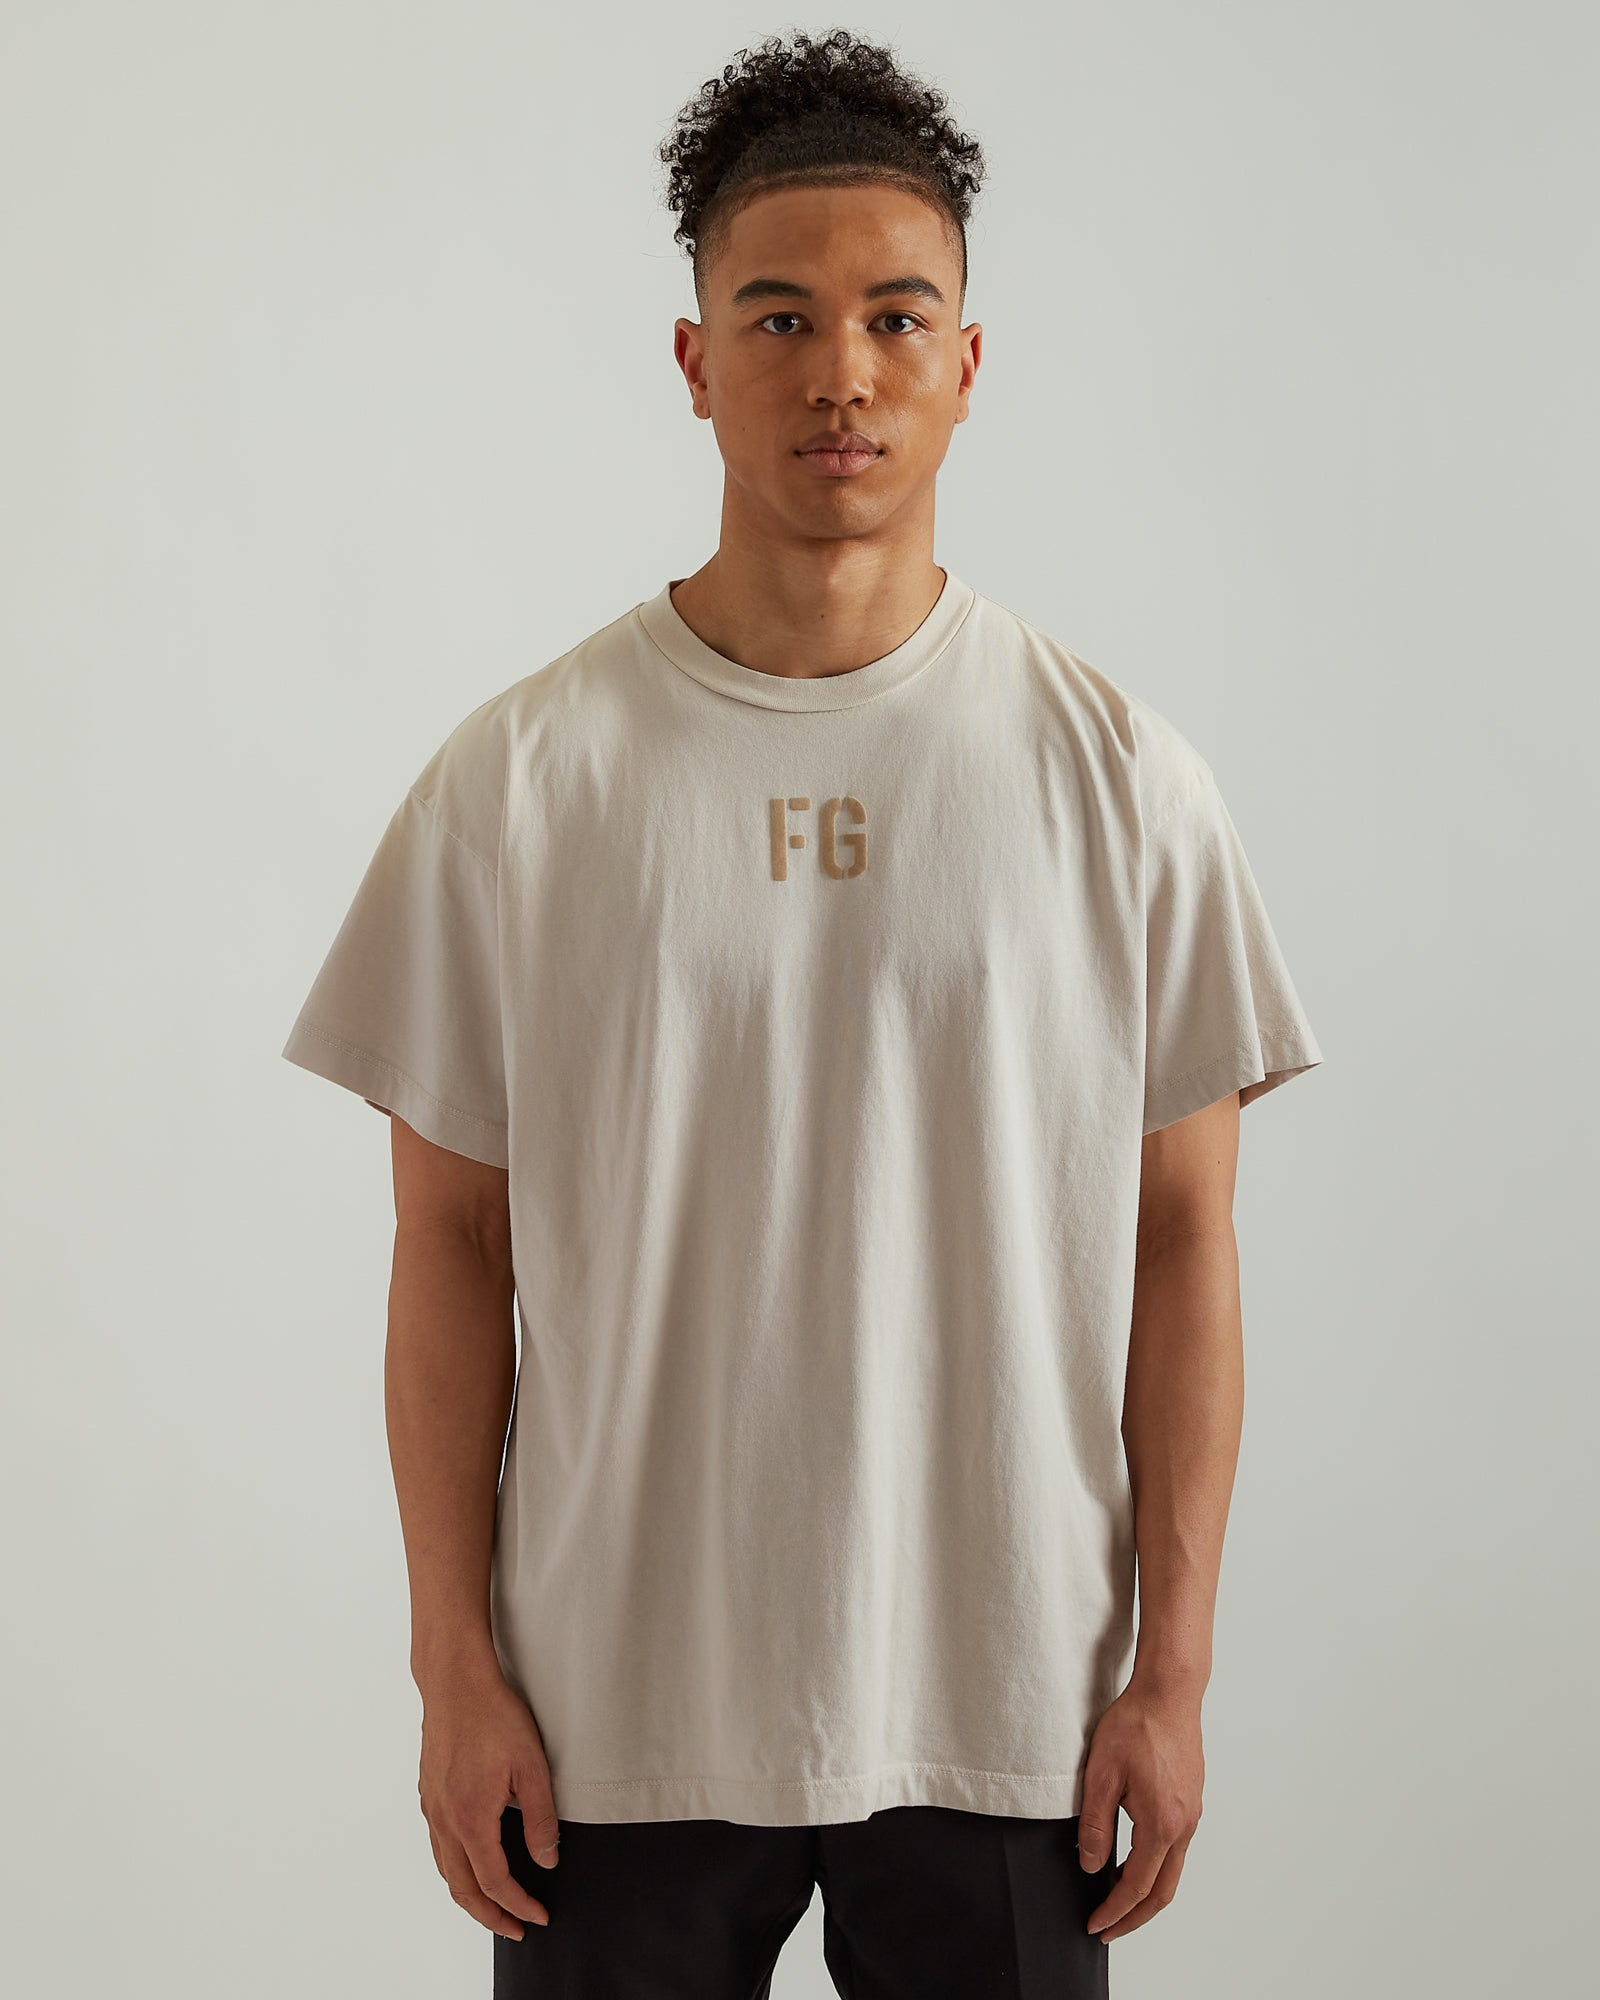 """FG"" Tee in Vintage Concrete White"